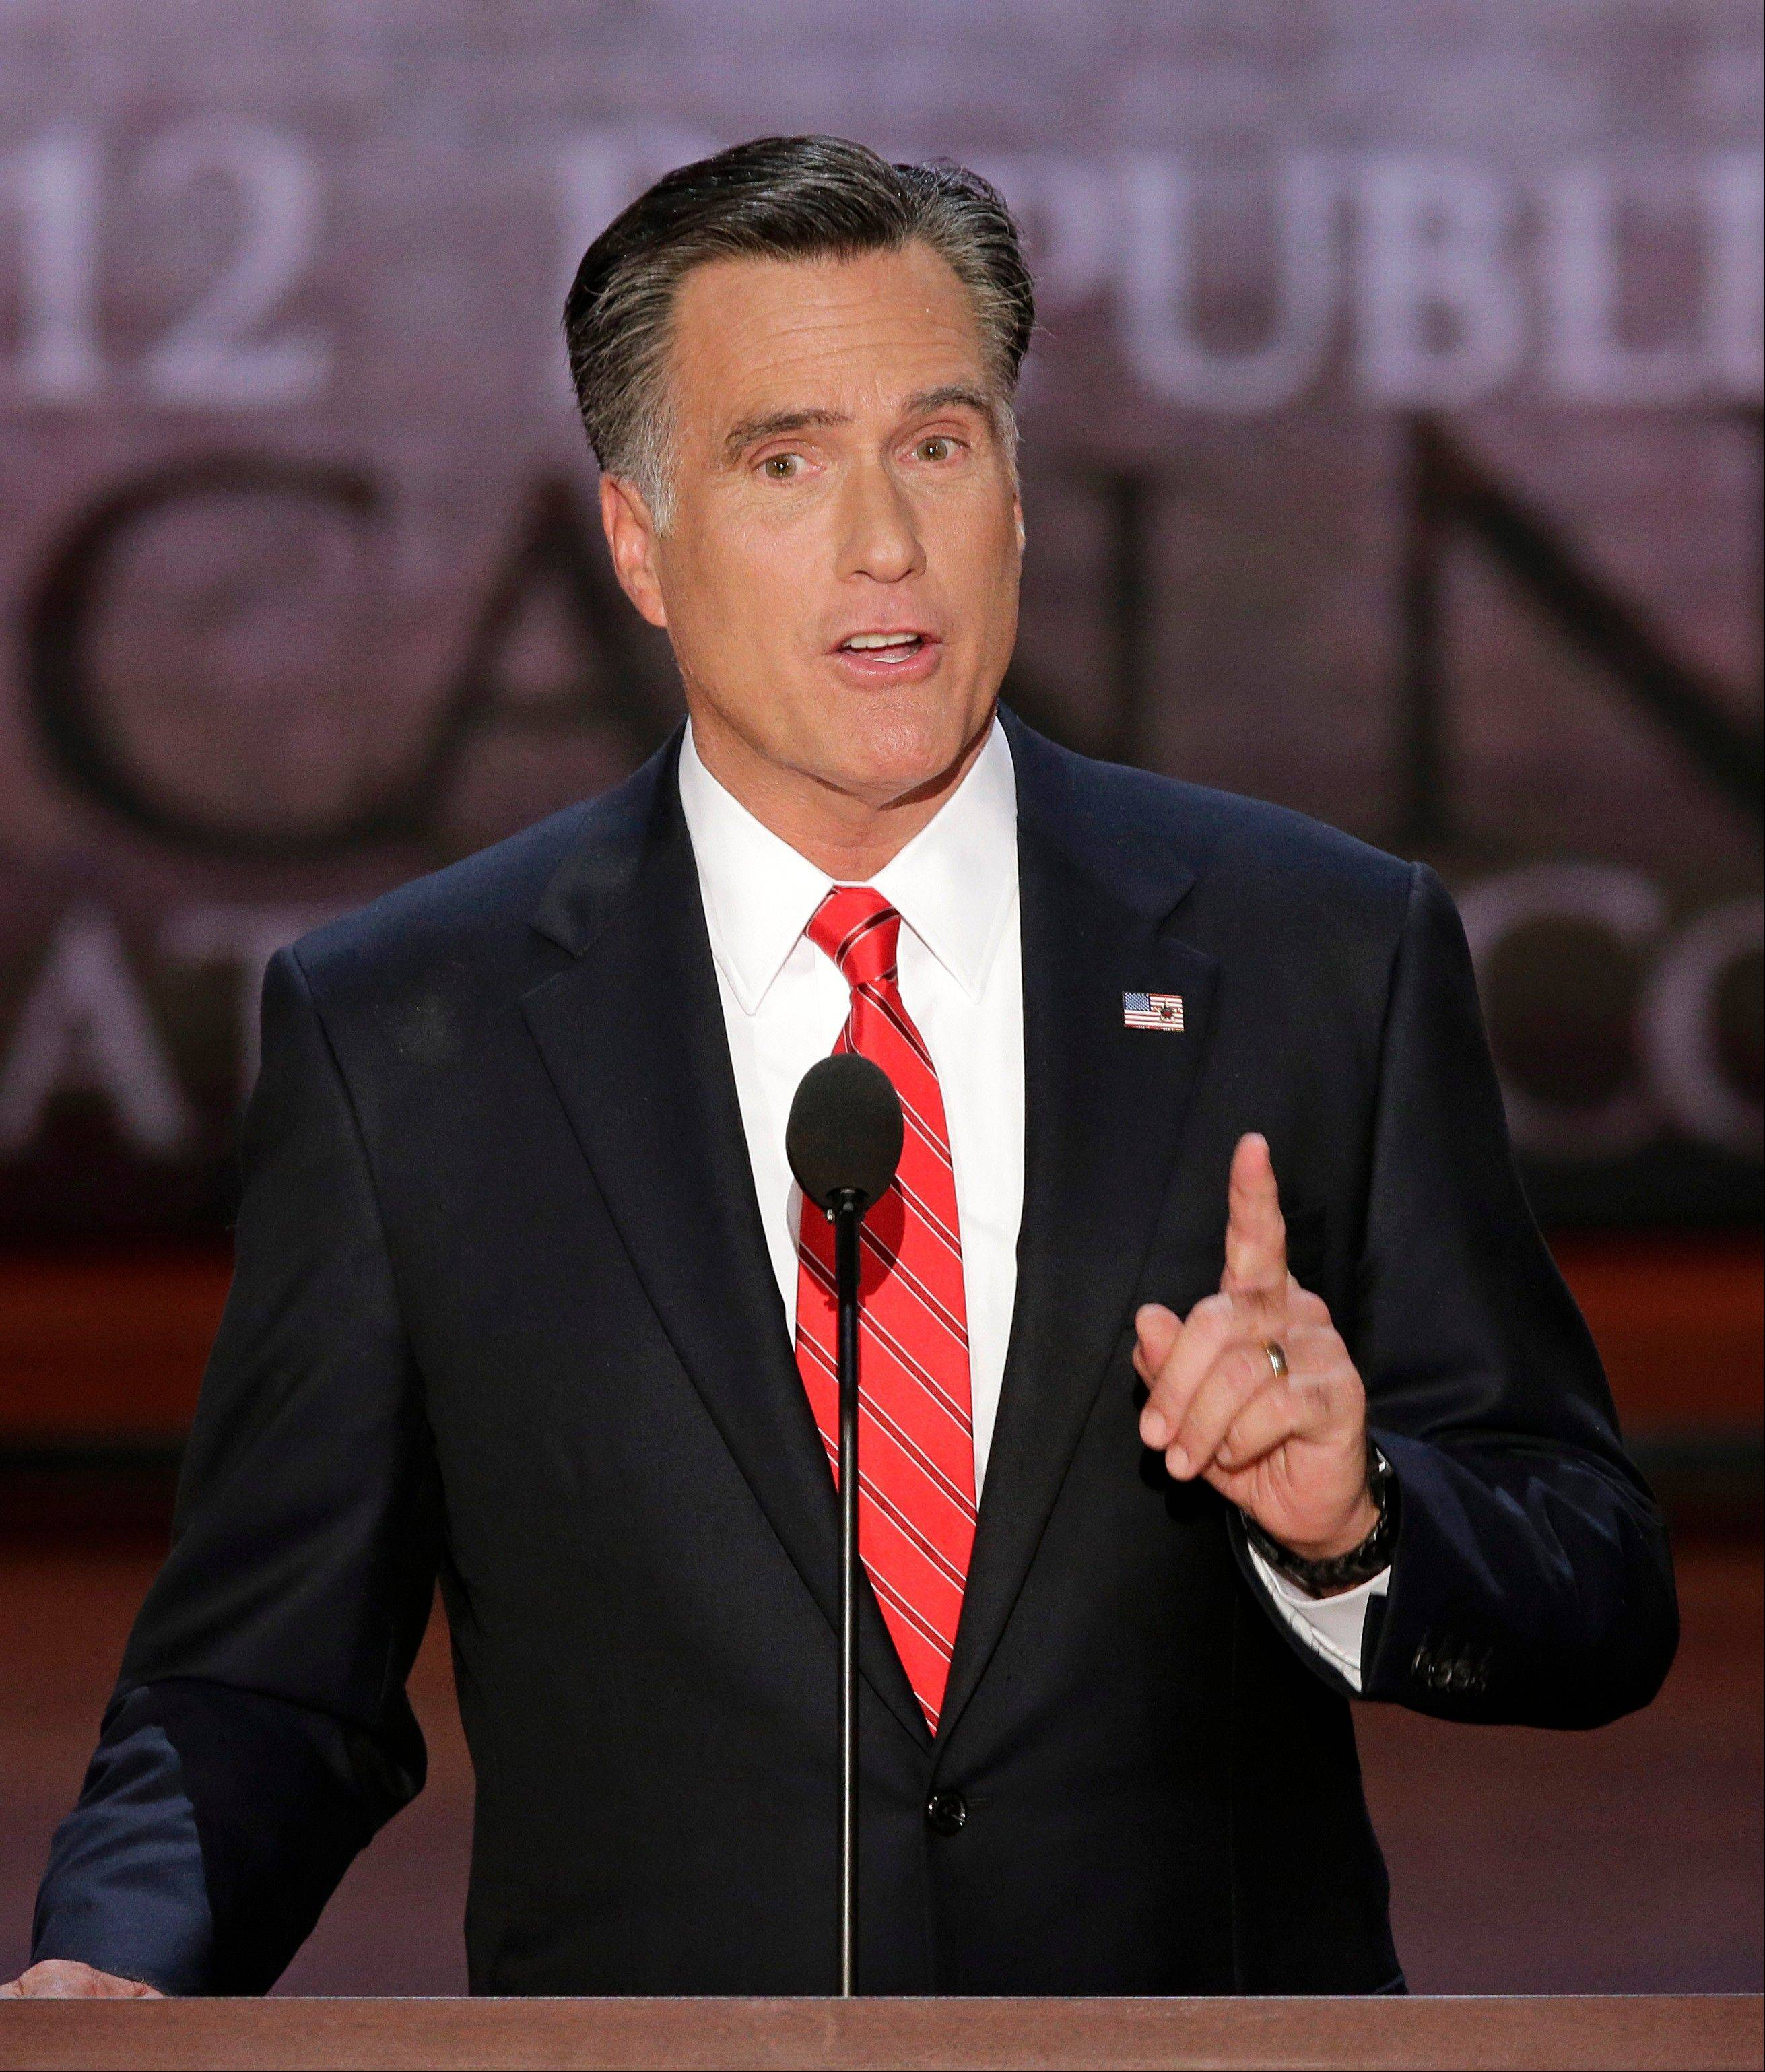 Fact check: Romney's deficit vow lacks specifics